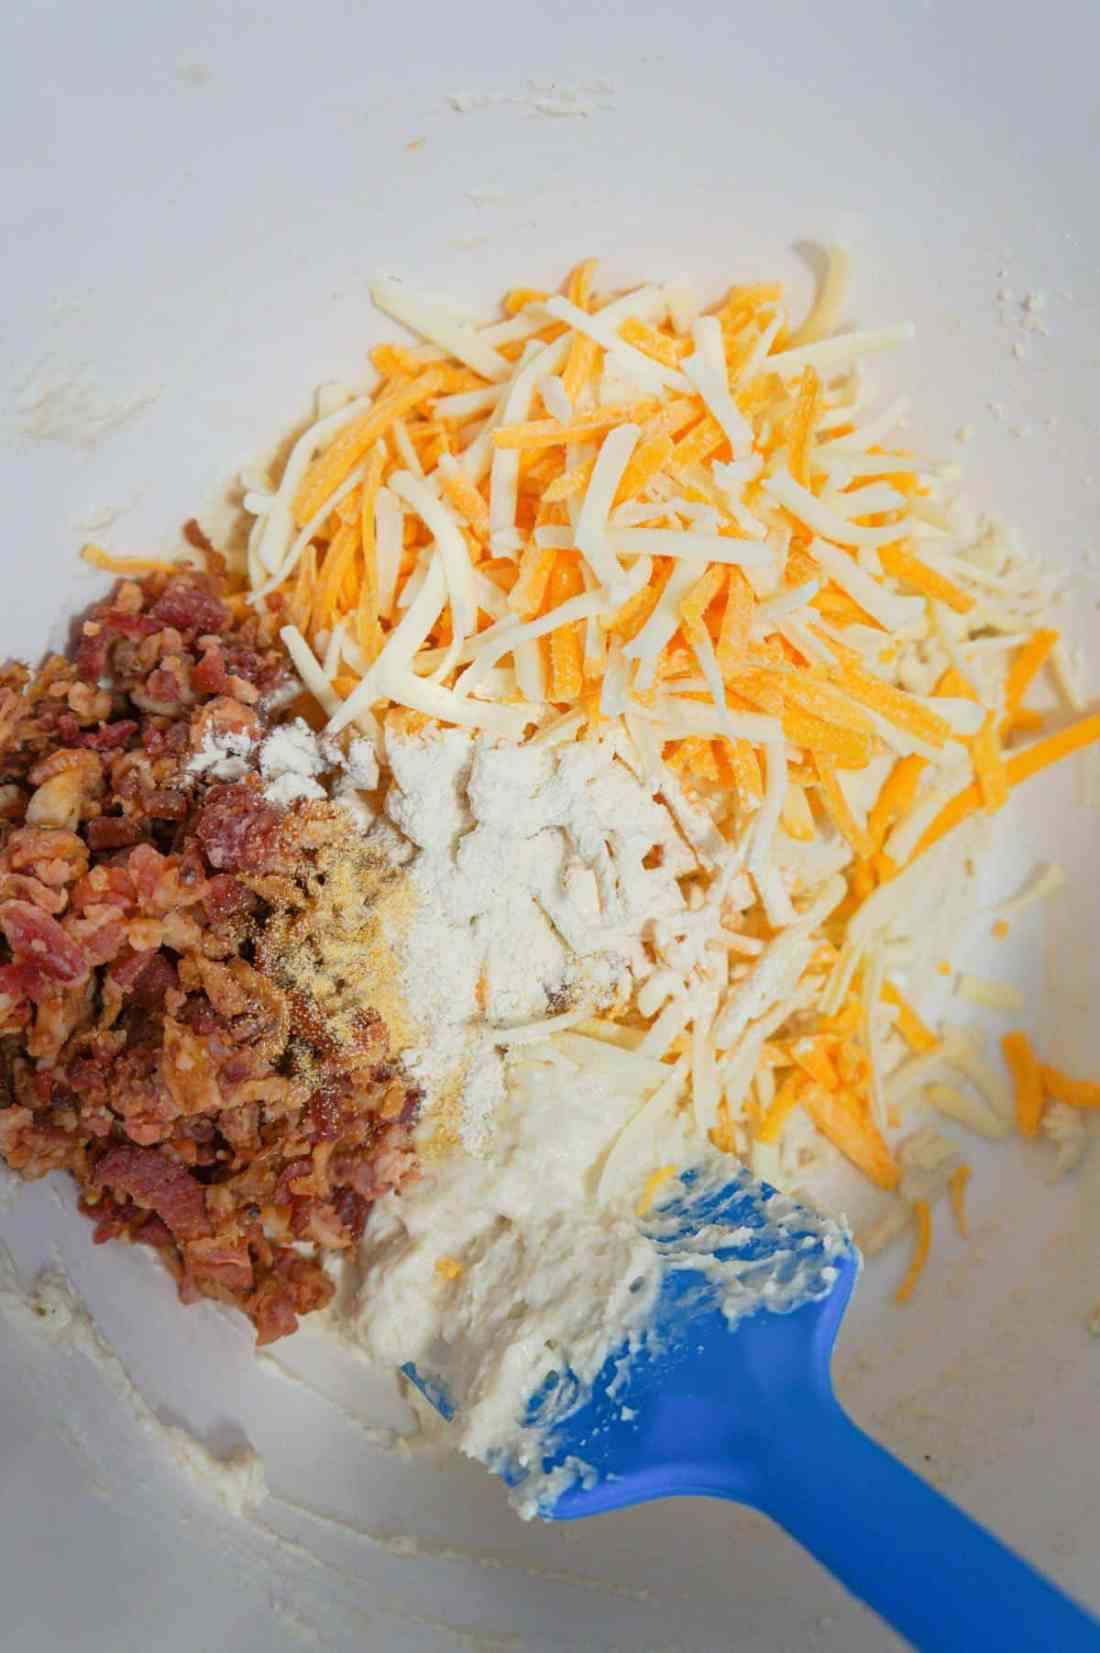 shredded cheese, crumbled bacon and spices on top of biscuit dough in a mixing bowl